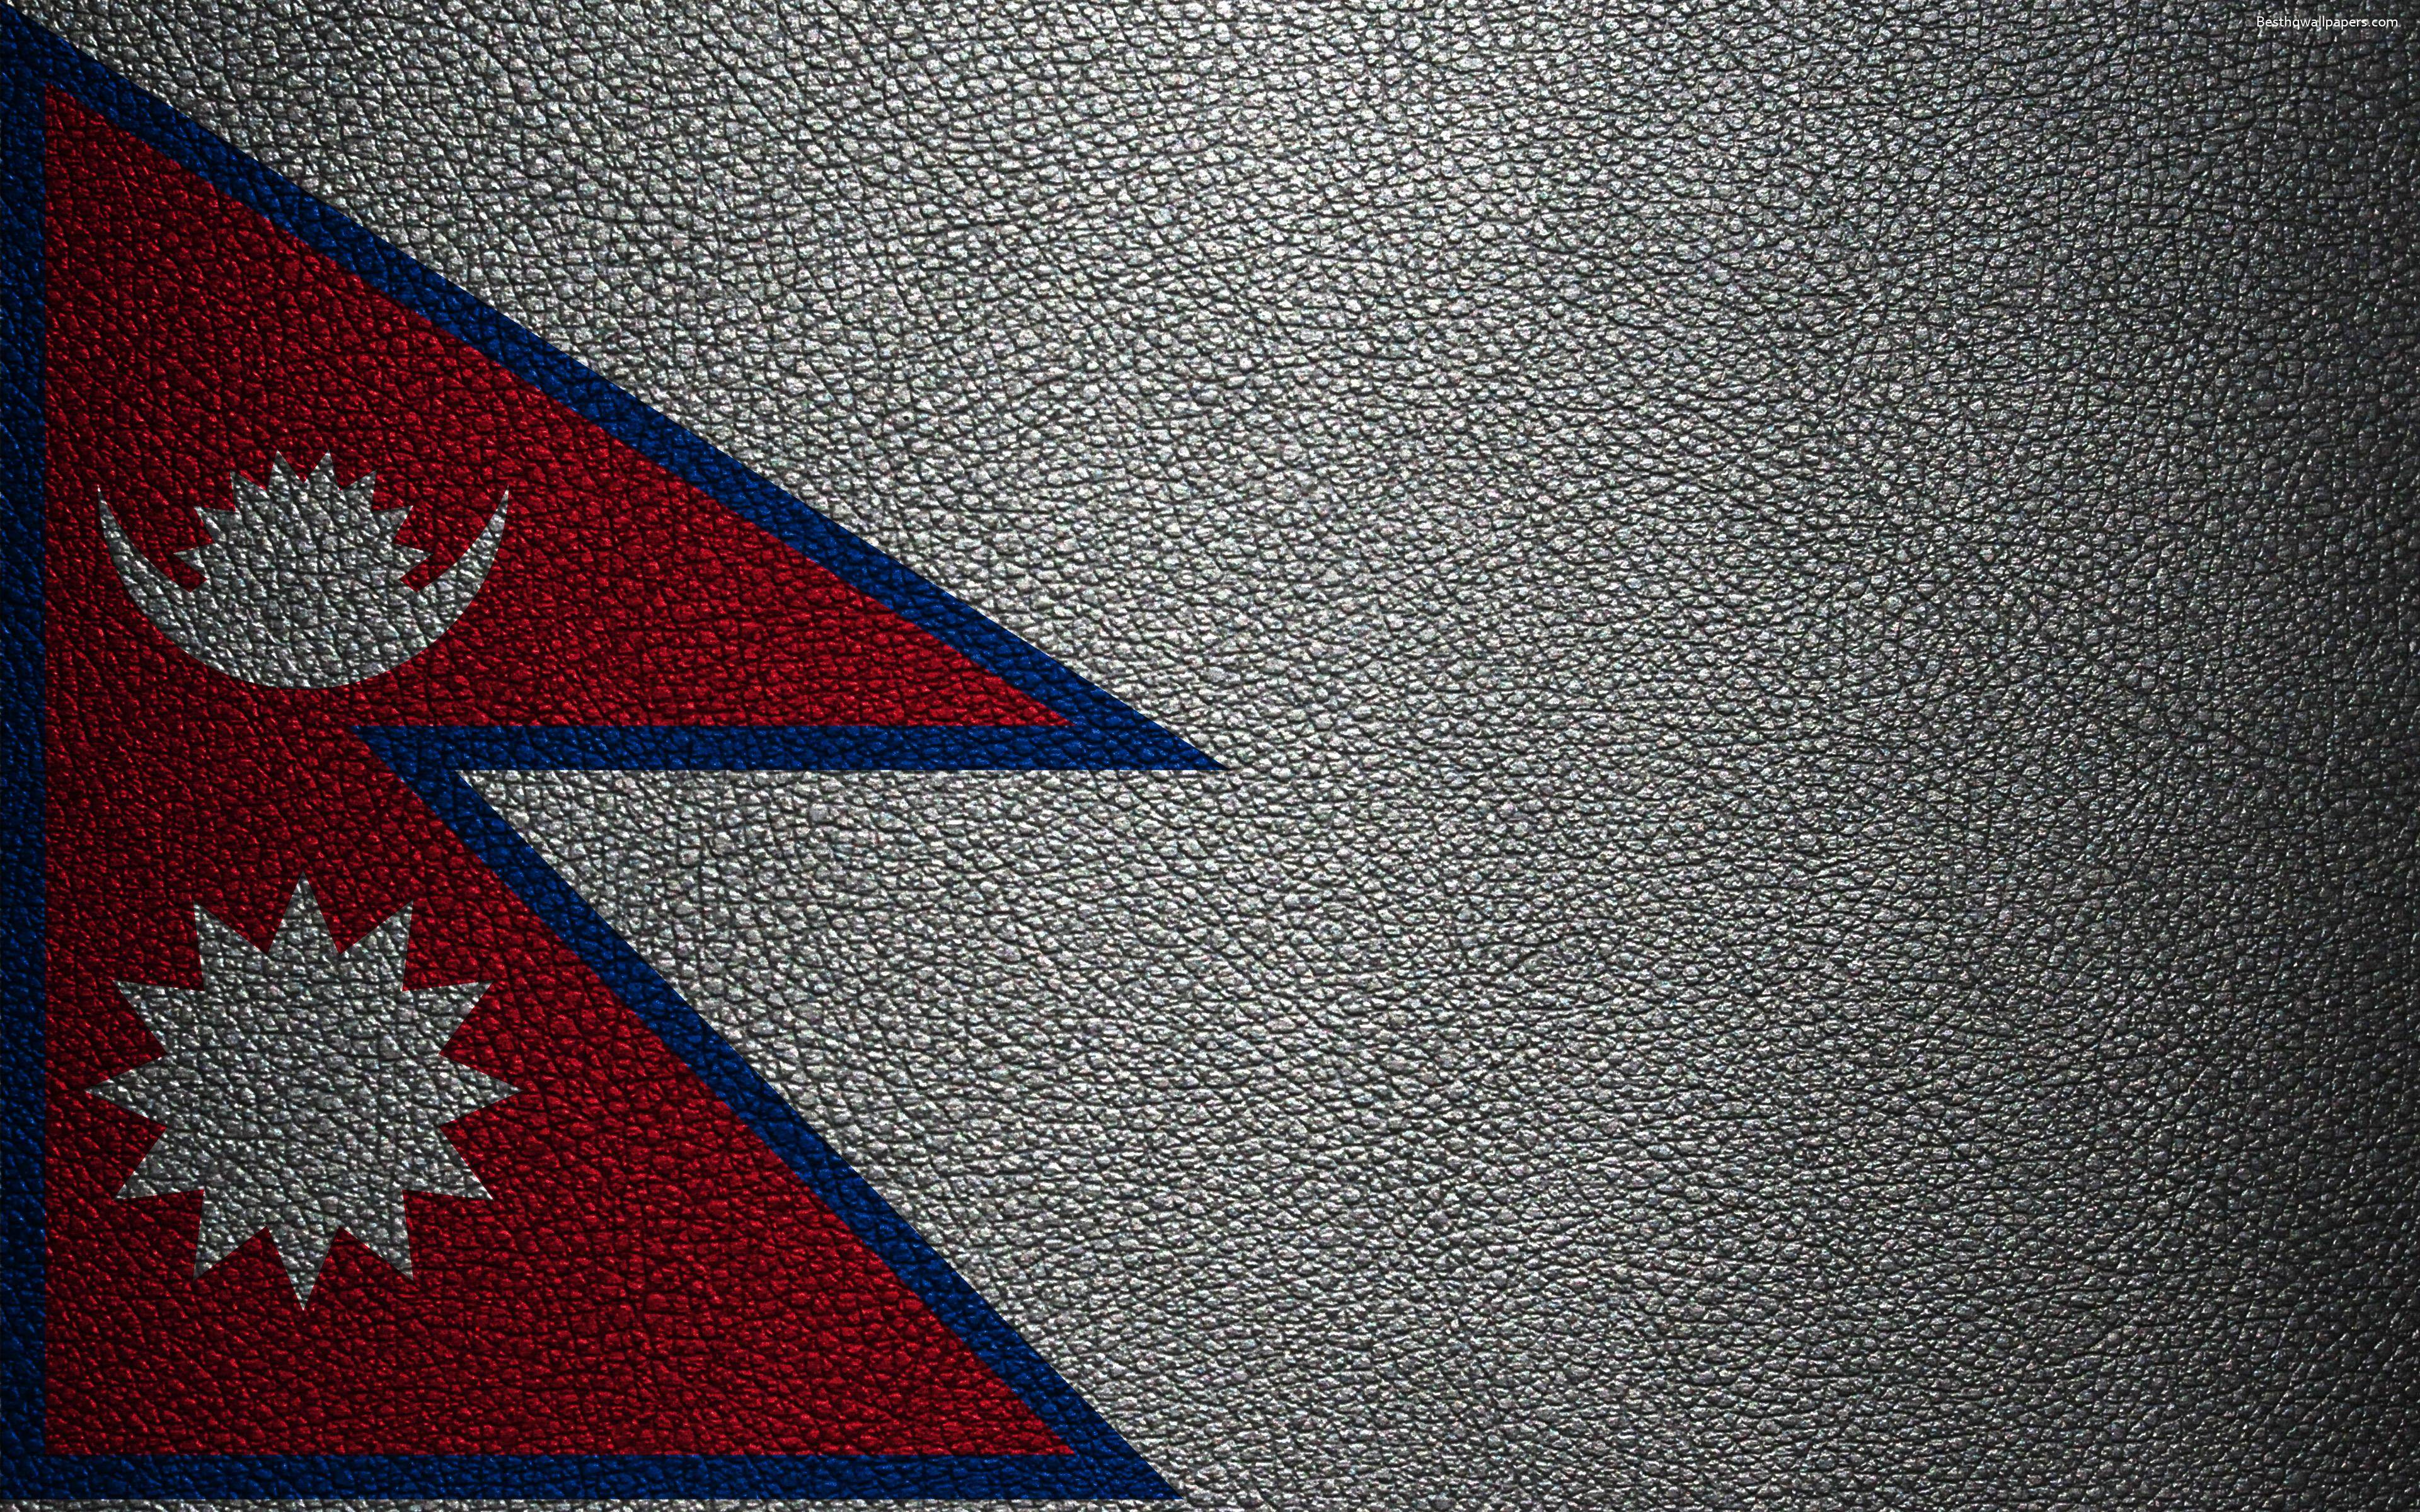 Download wallpapers Flag of Nepal, 4k, leather texture, Nepalese